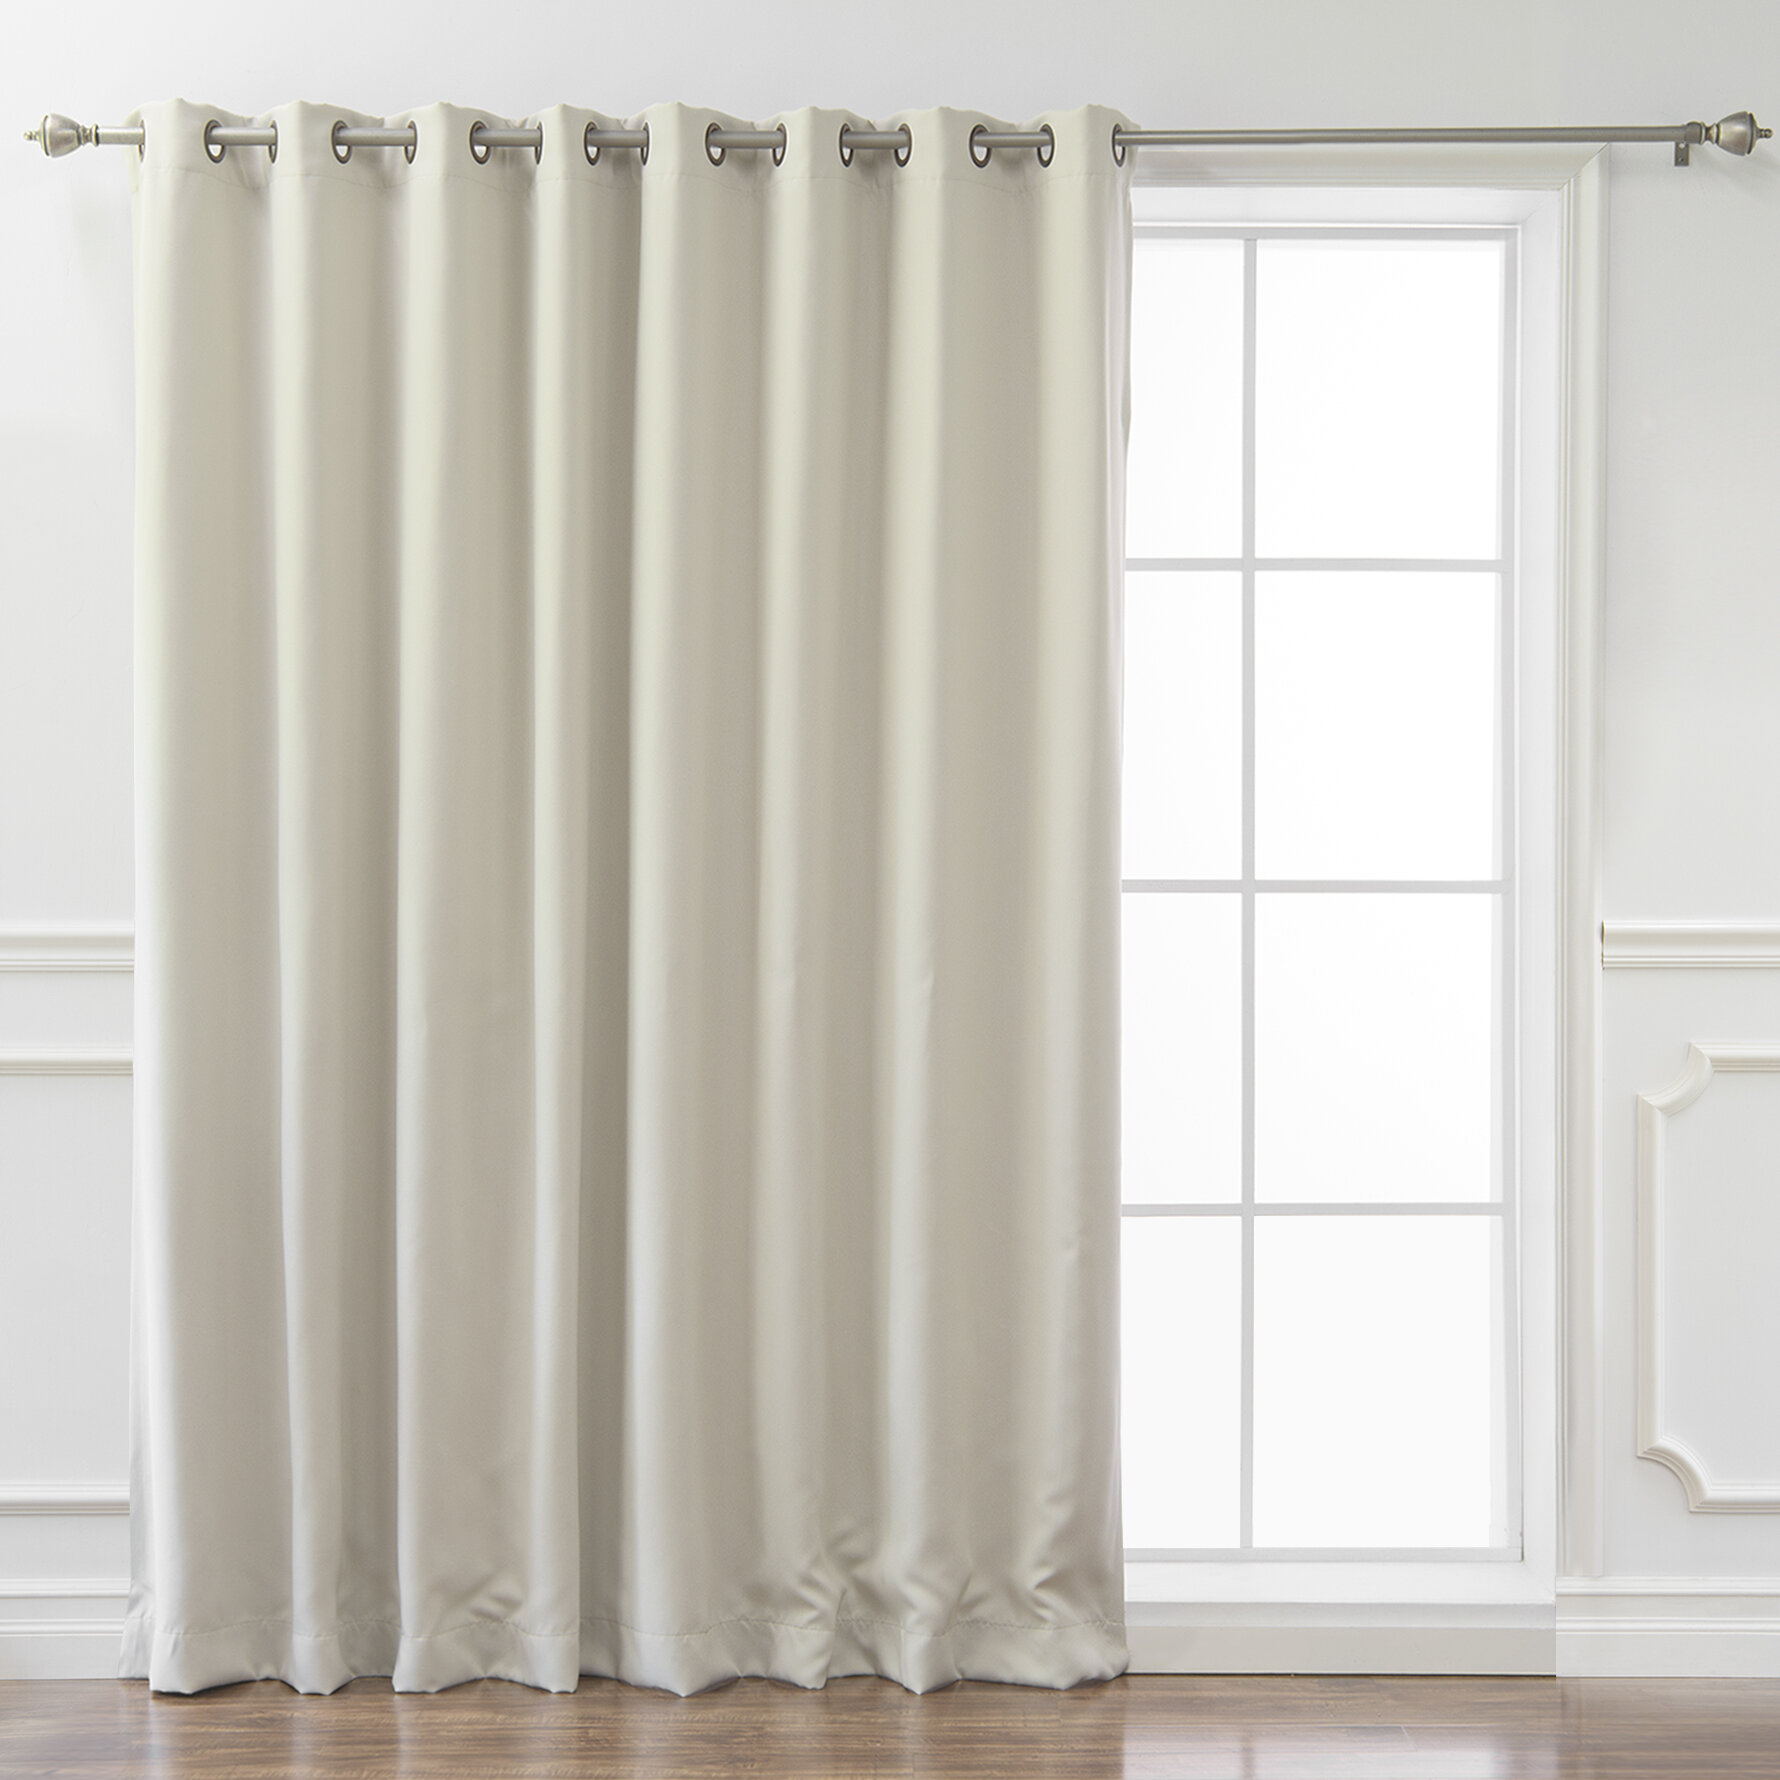 Lucca Solid Blackout Thermal Grommet Single Curtain Panel throughout Luxury Collection Venetian Sheer Curtain Panel Pairs (Image 13 of 20)